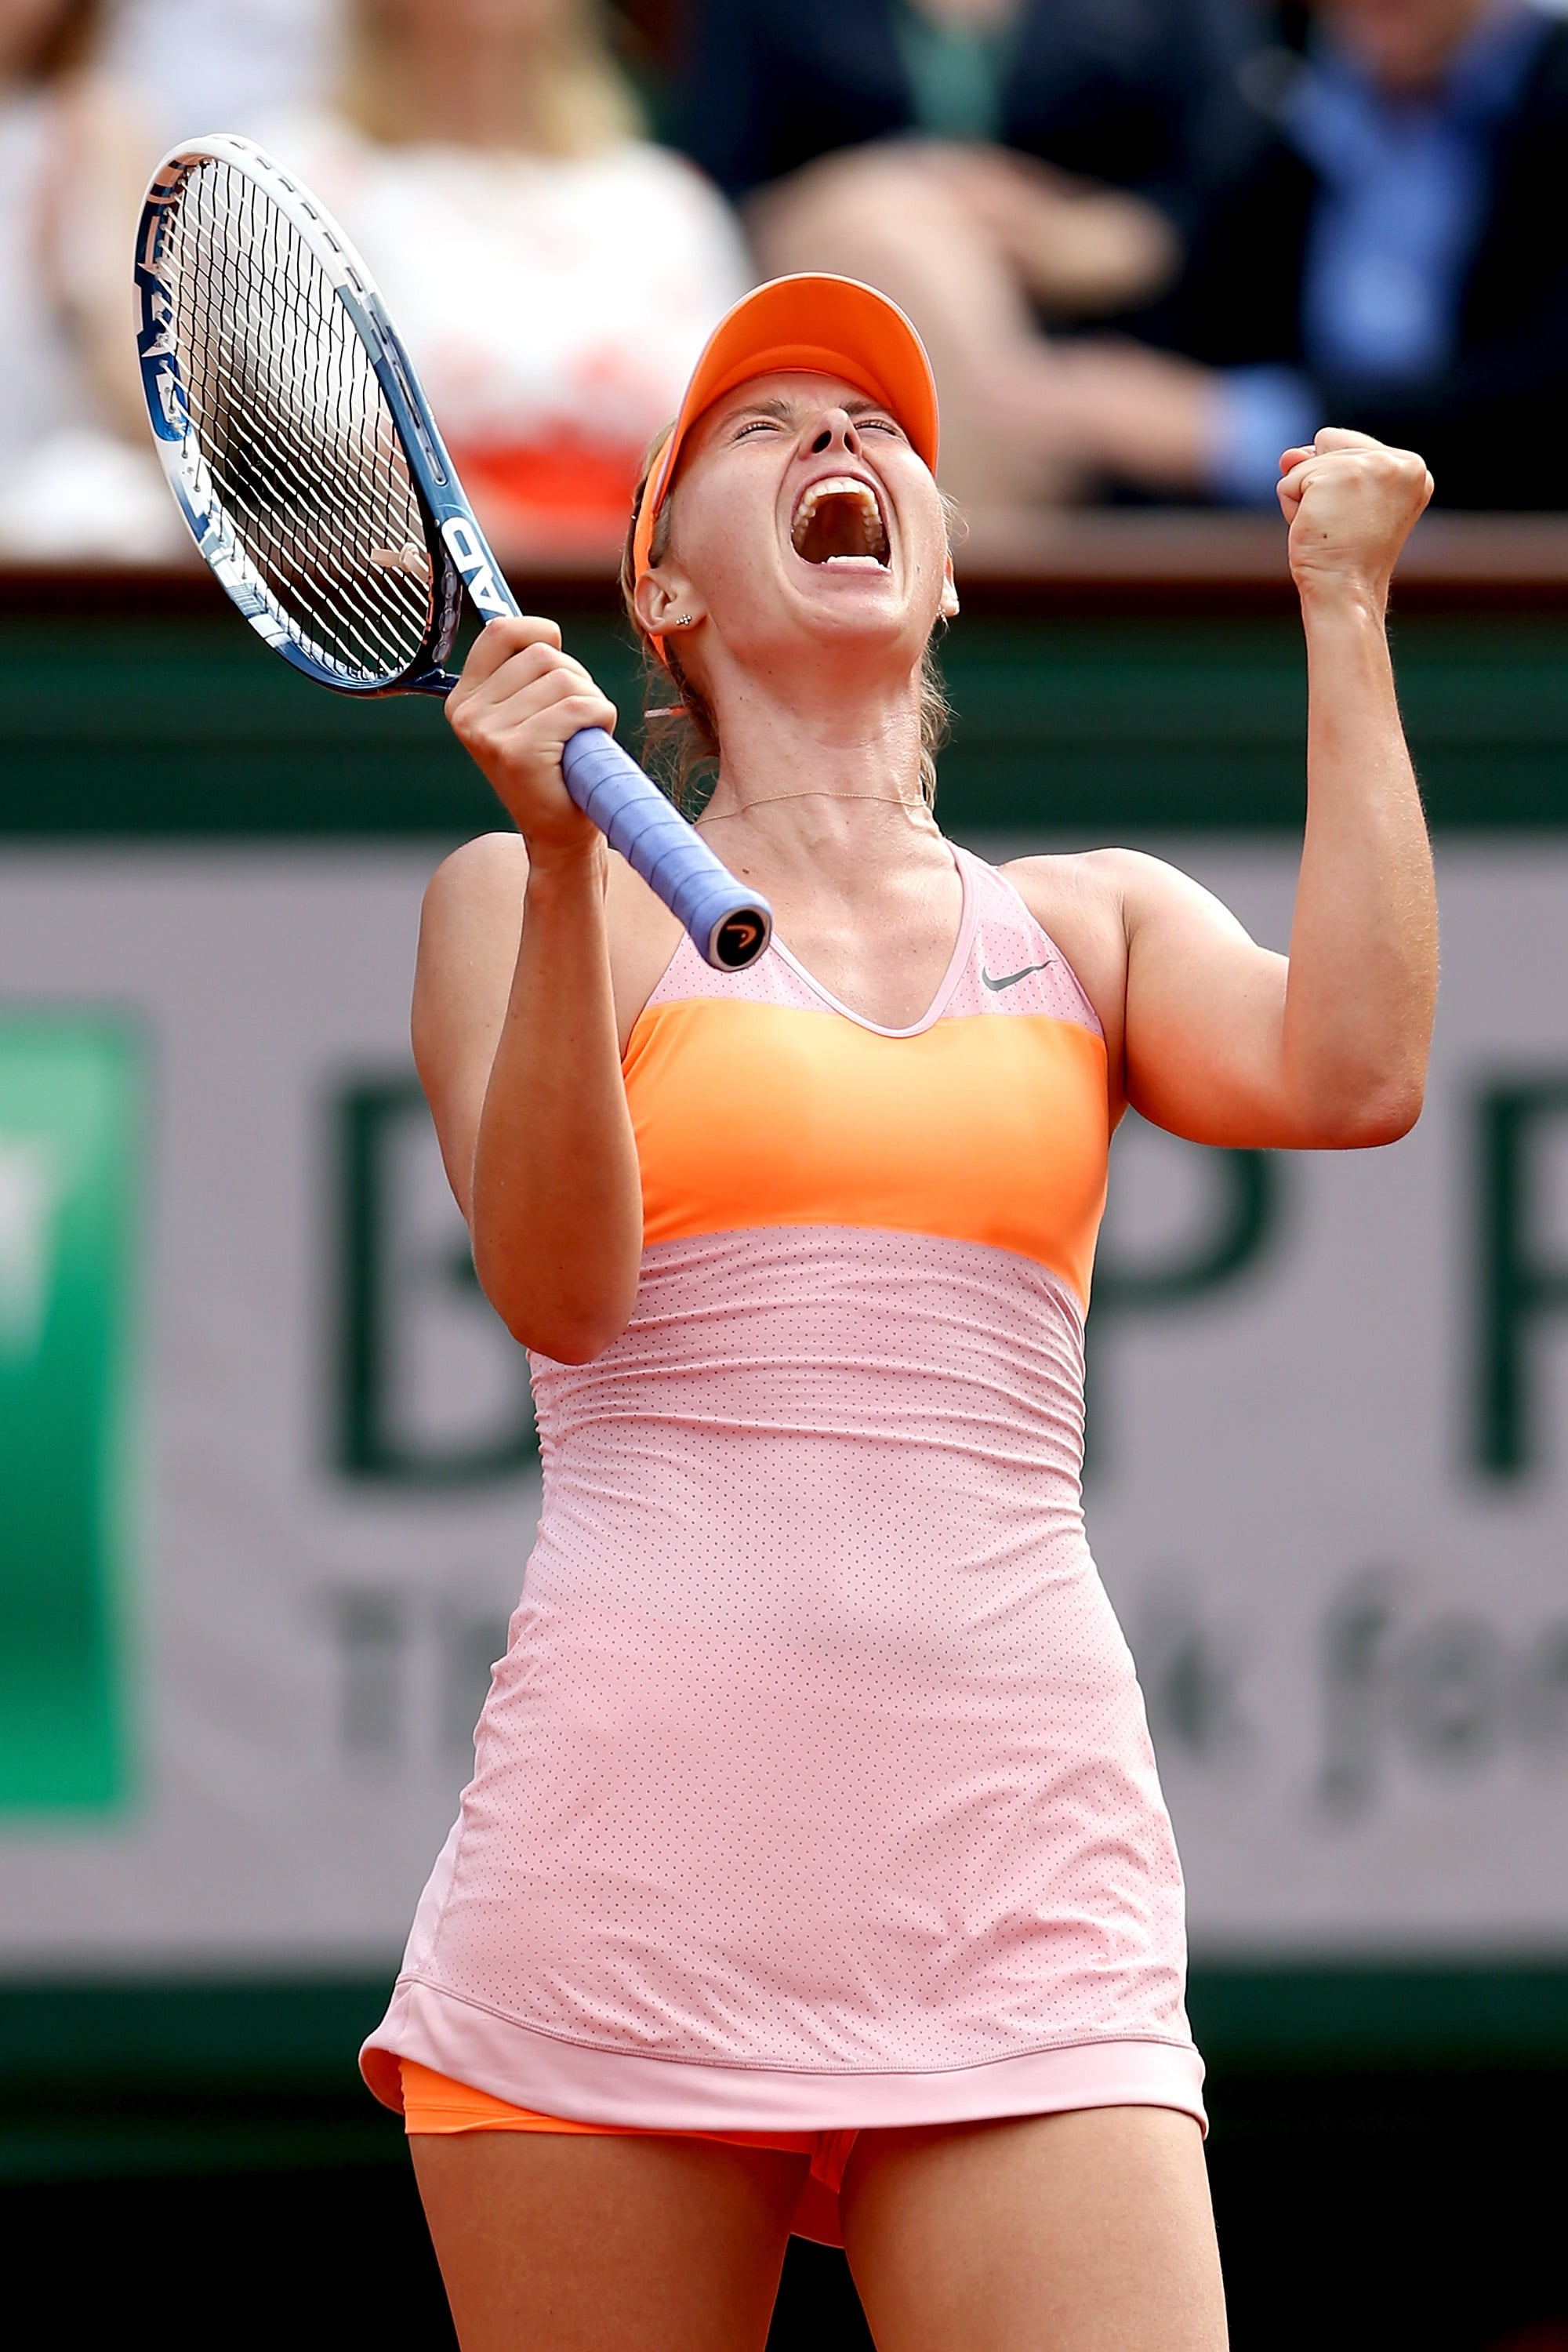 Maria Sharapova had something to celebrate: her colorful orange and pink ensemble was a smashing success at the 2014 French Open.